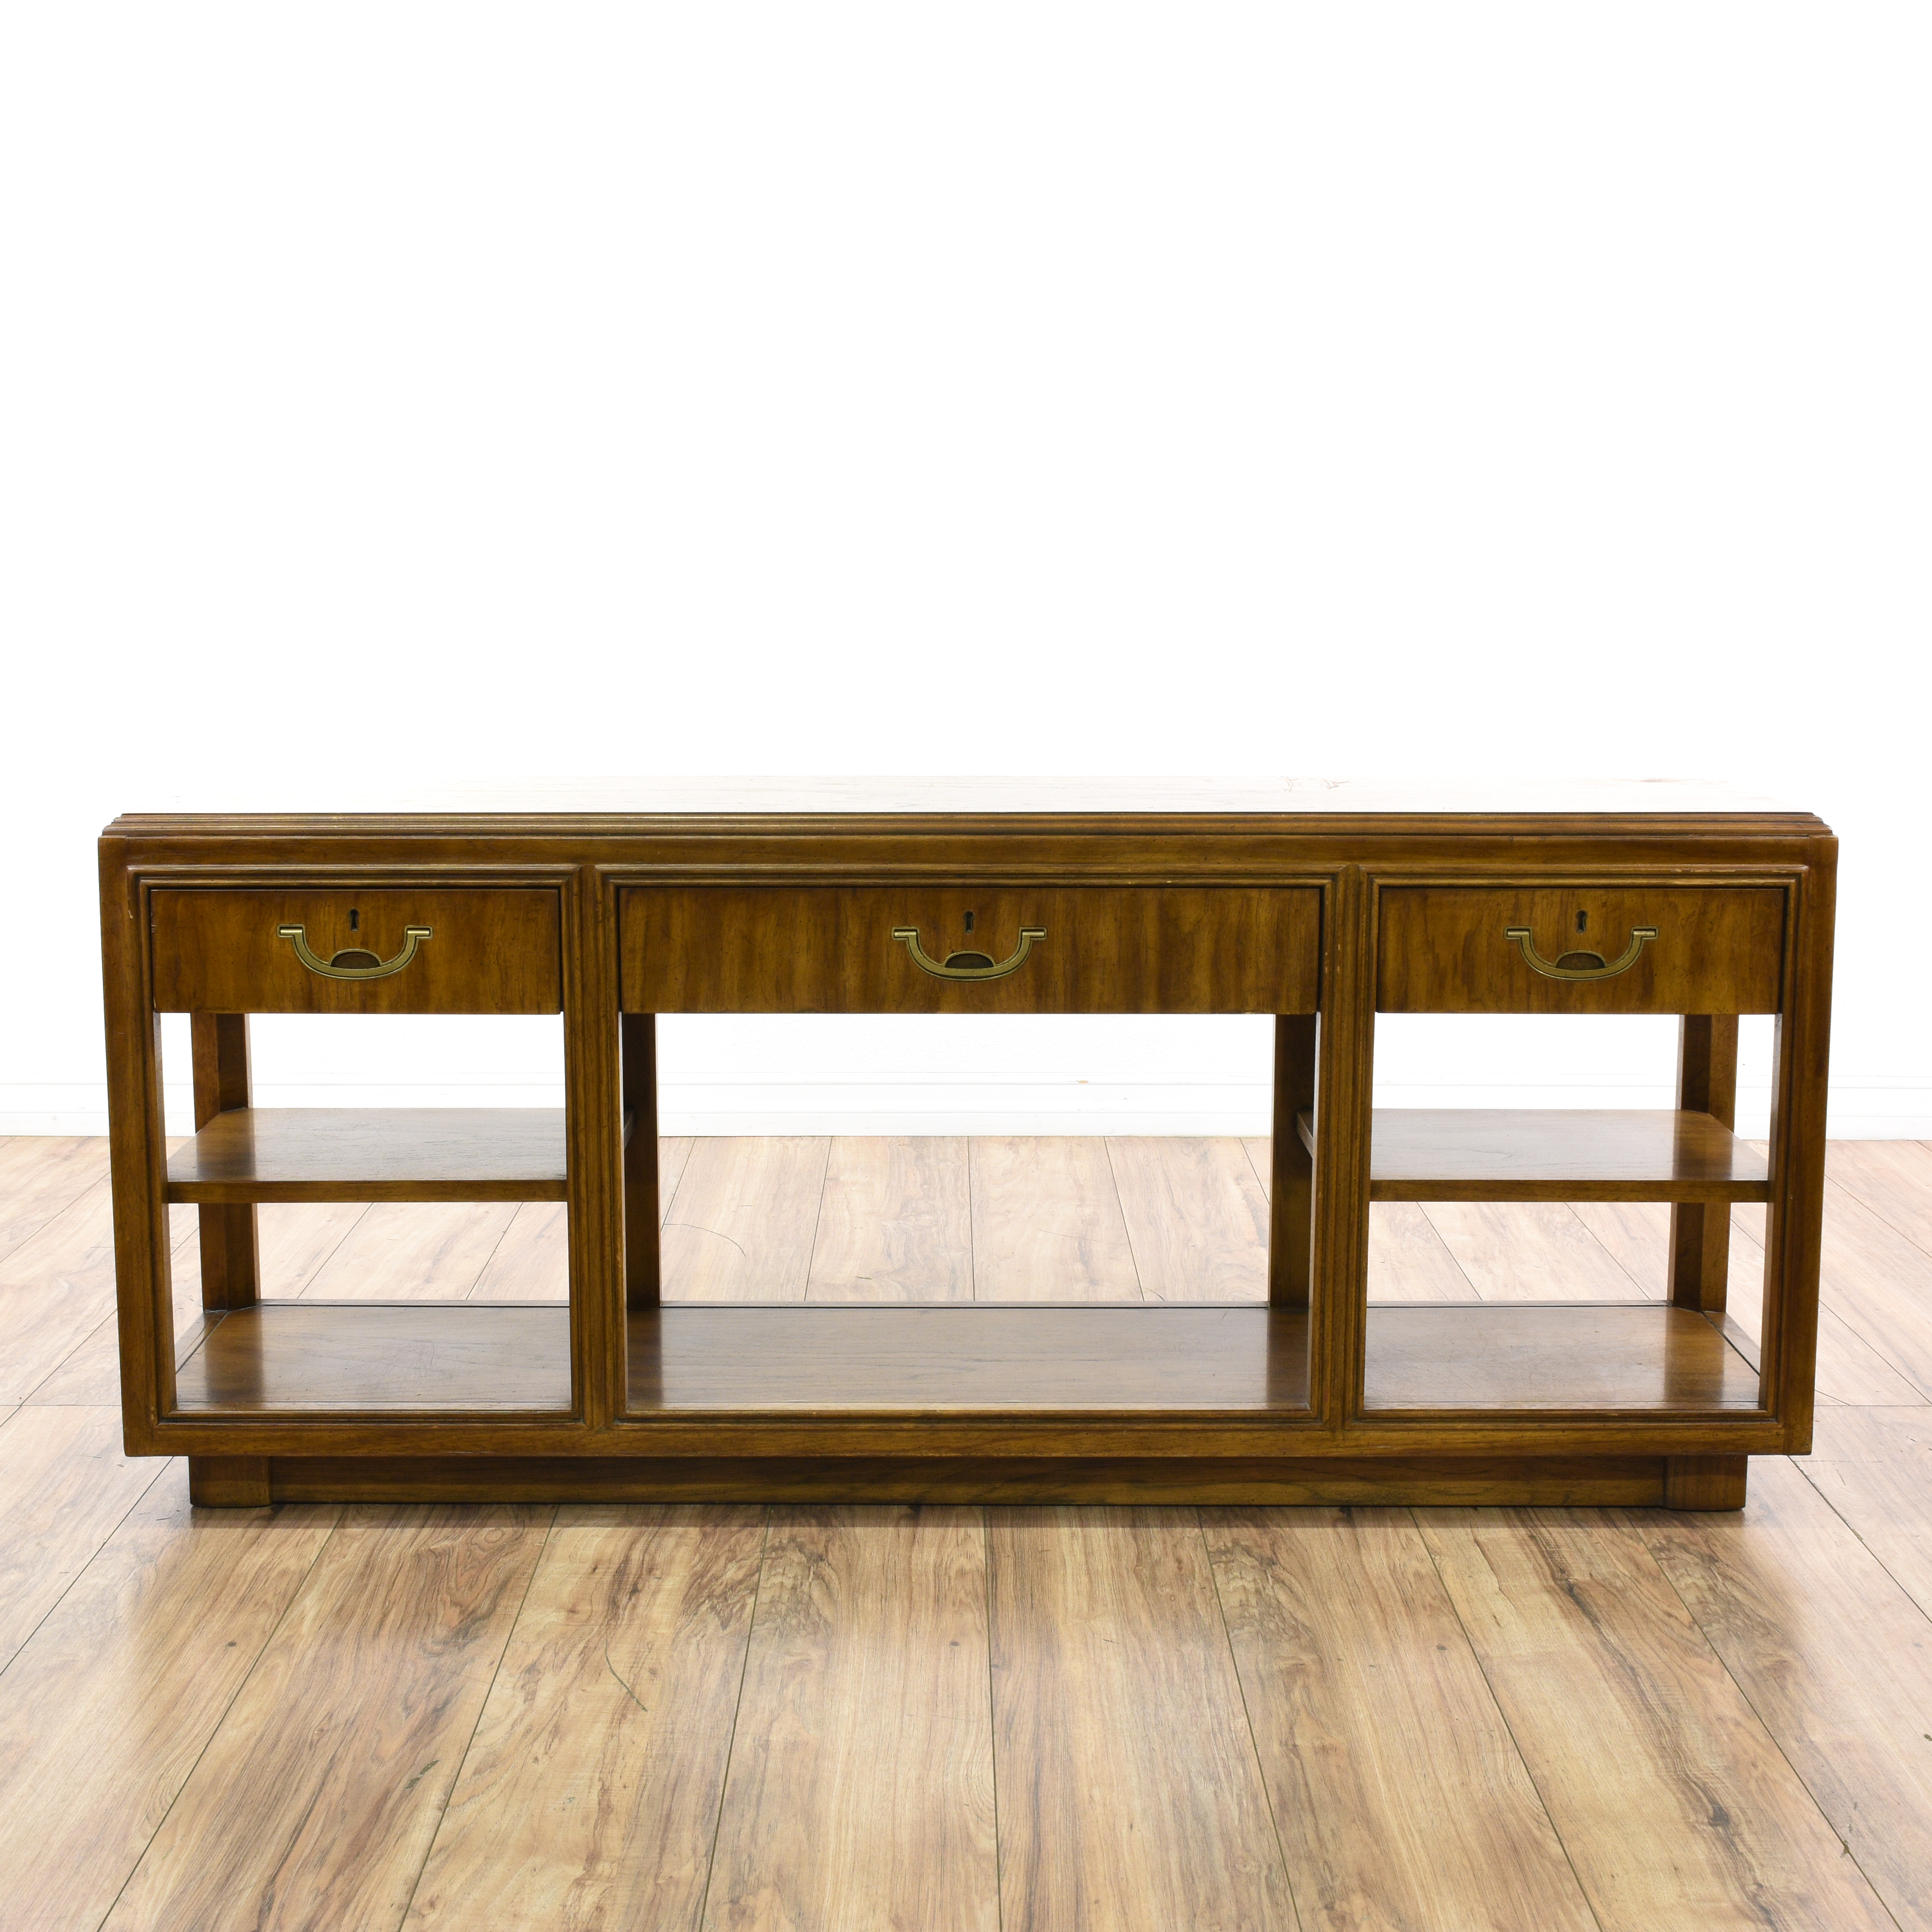 drexel sofa table foster elite 98 leather quotdrexel accolade quot campaign console sideboard